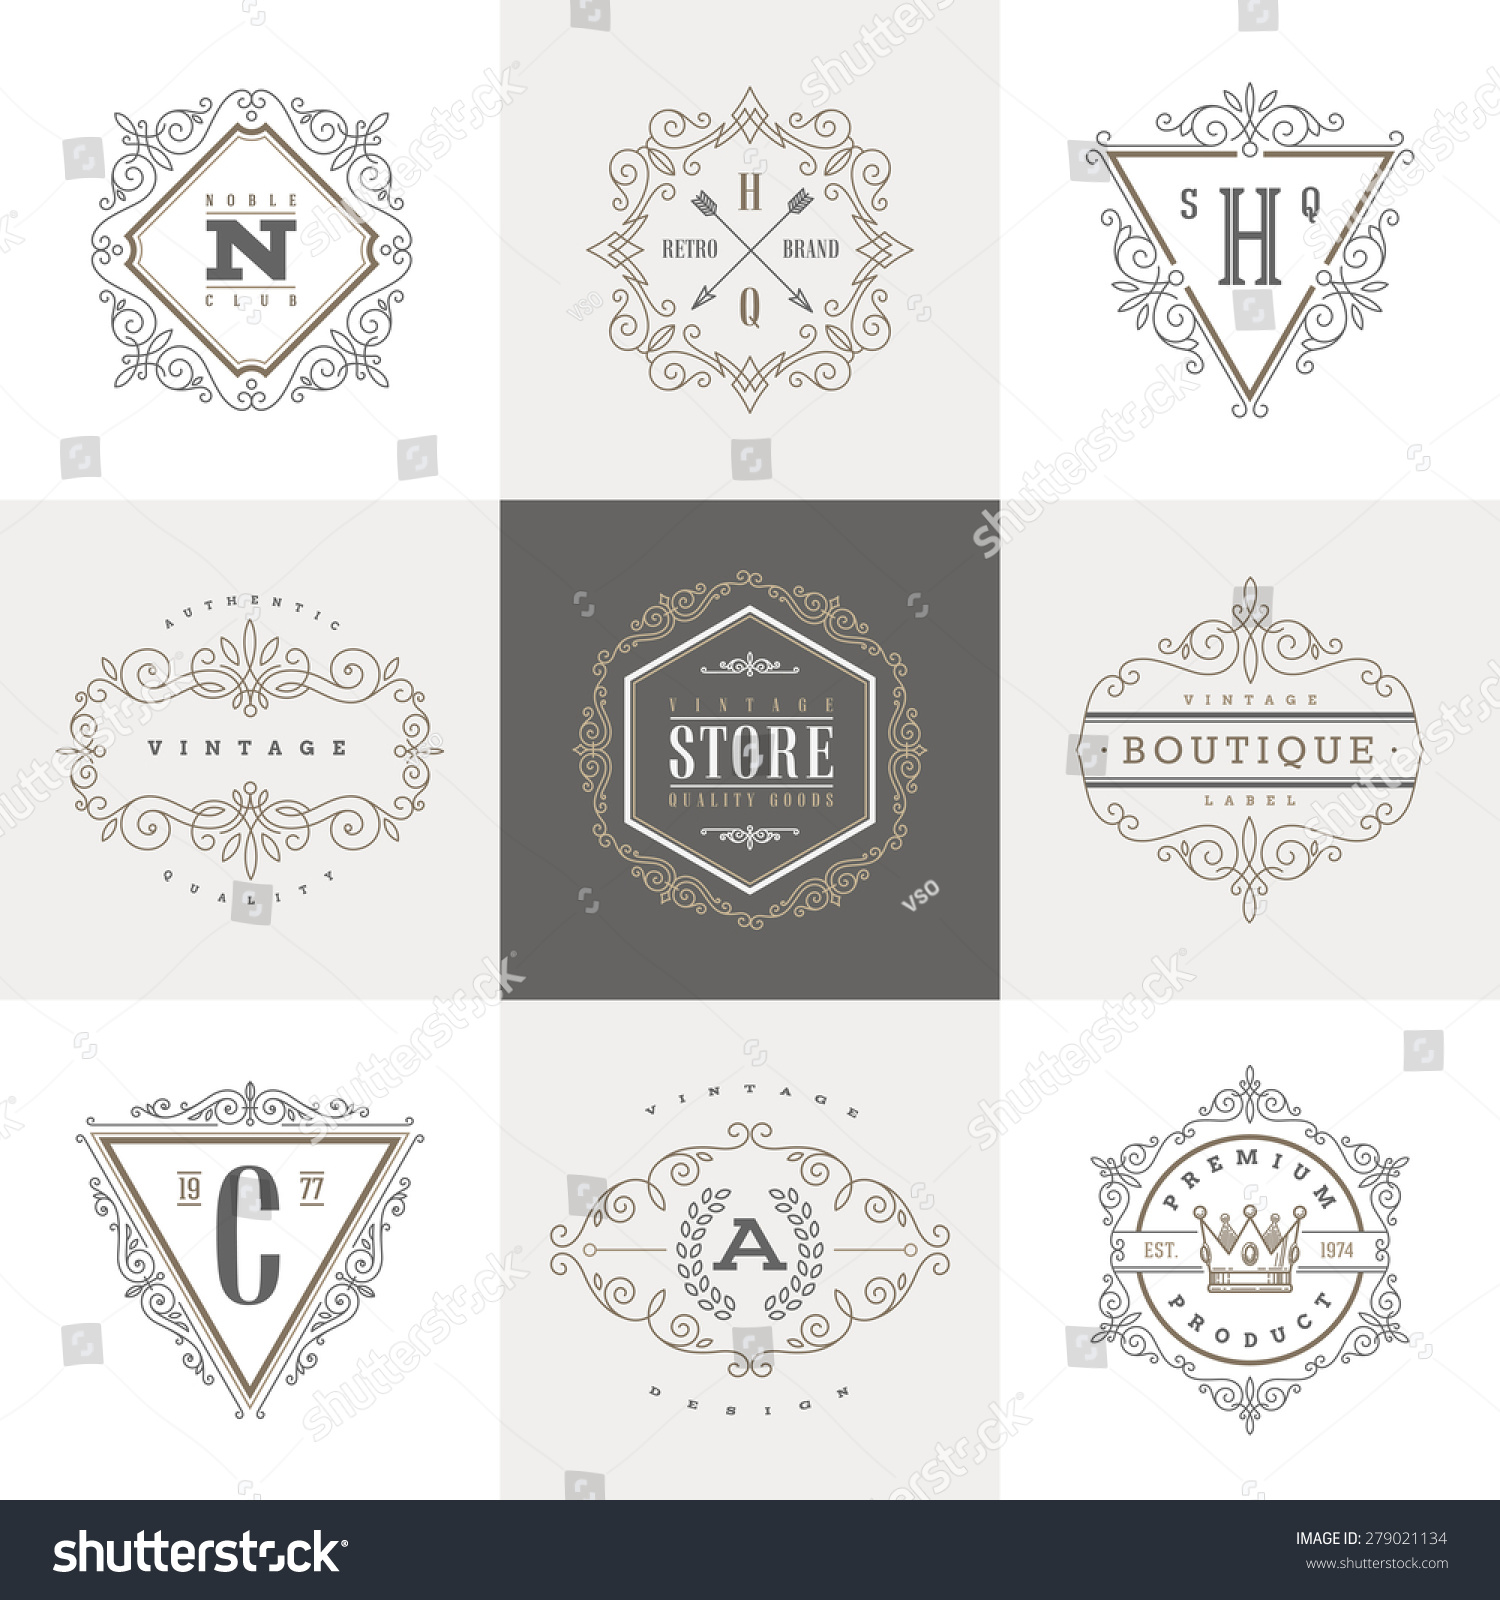 Monogram logo template with flourishes calligraphic elegant ornament elements Identity design with letter for cafe shop store restaurant boutique hotel heraldic fashion and etc